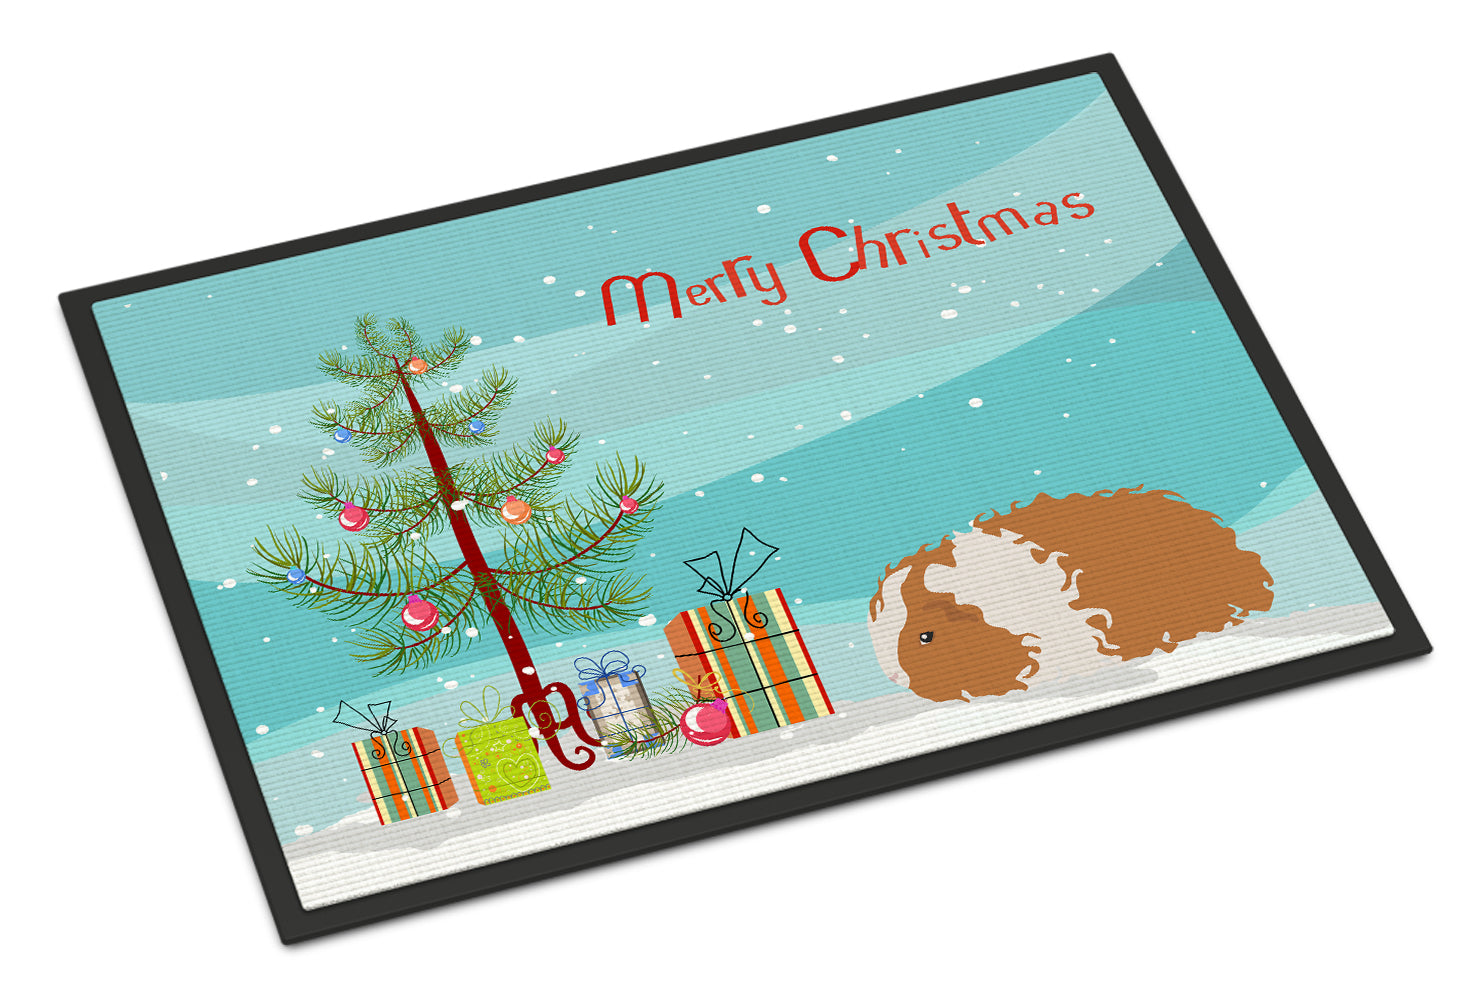 Texel Guinea Pig Merry Christmas Indoor or Outdoor Mat 18x27 CK4449MAT by Caroline's Treasures